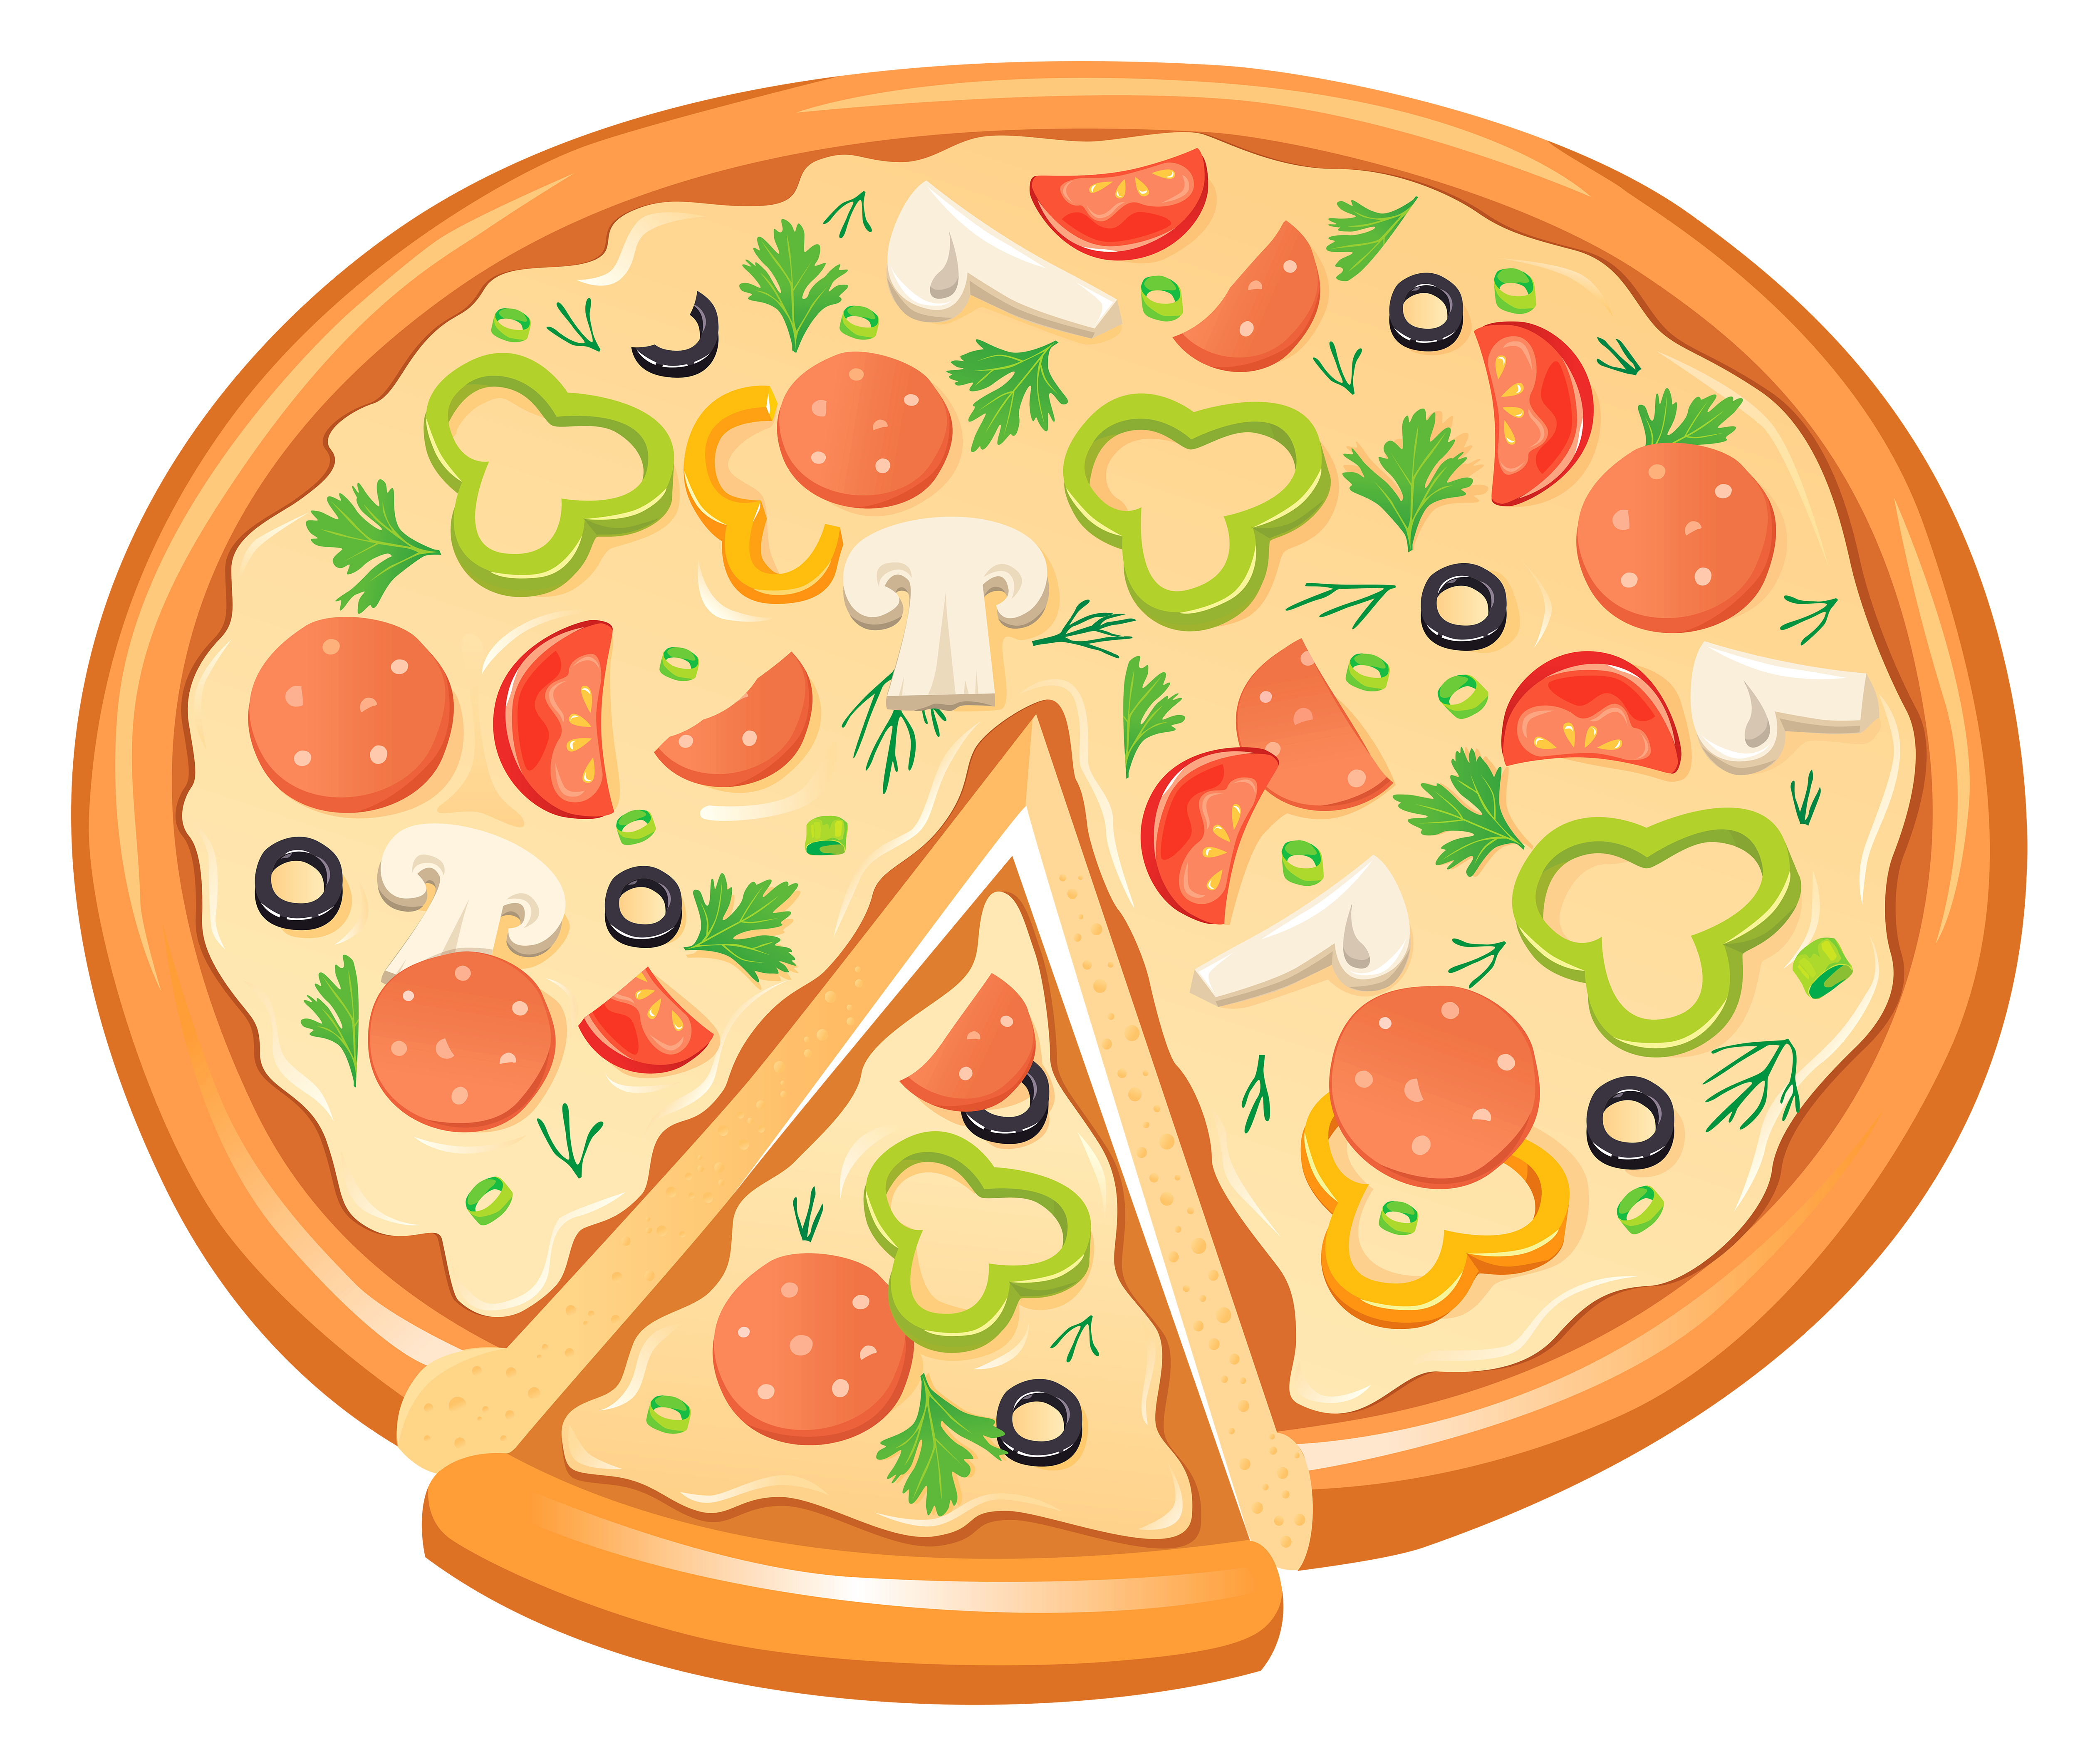 Pizza clipart png image black and white stock Pizza bagel Delicatessen Clip art - Pizza PNG Clipart png ... image black and white stock